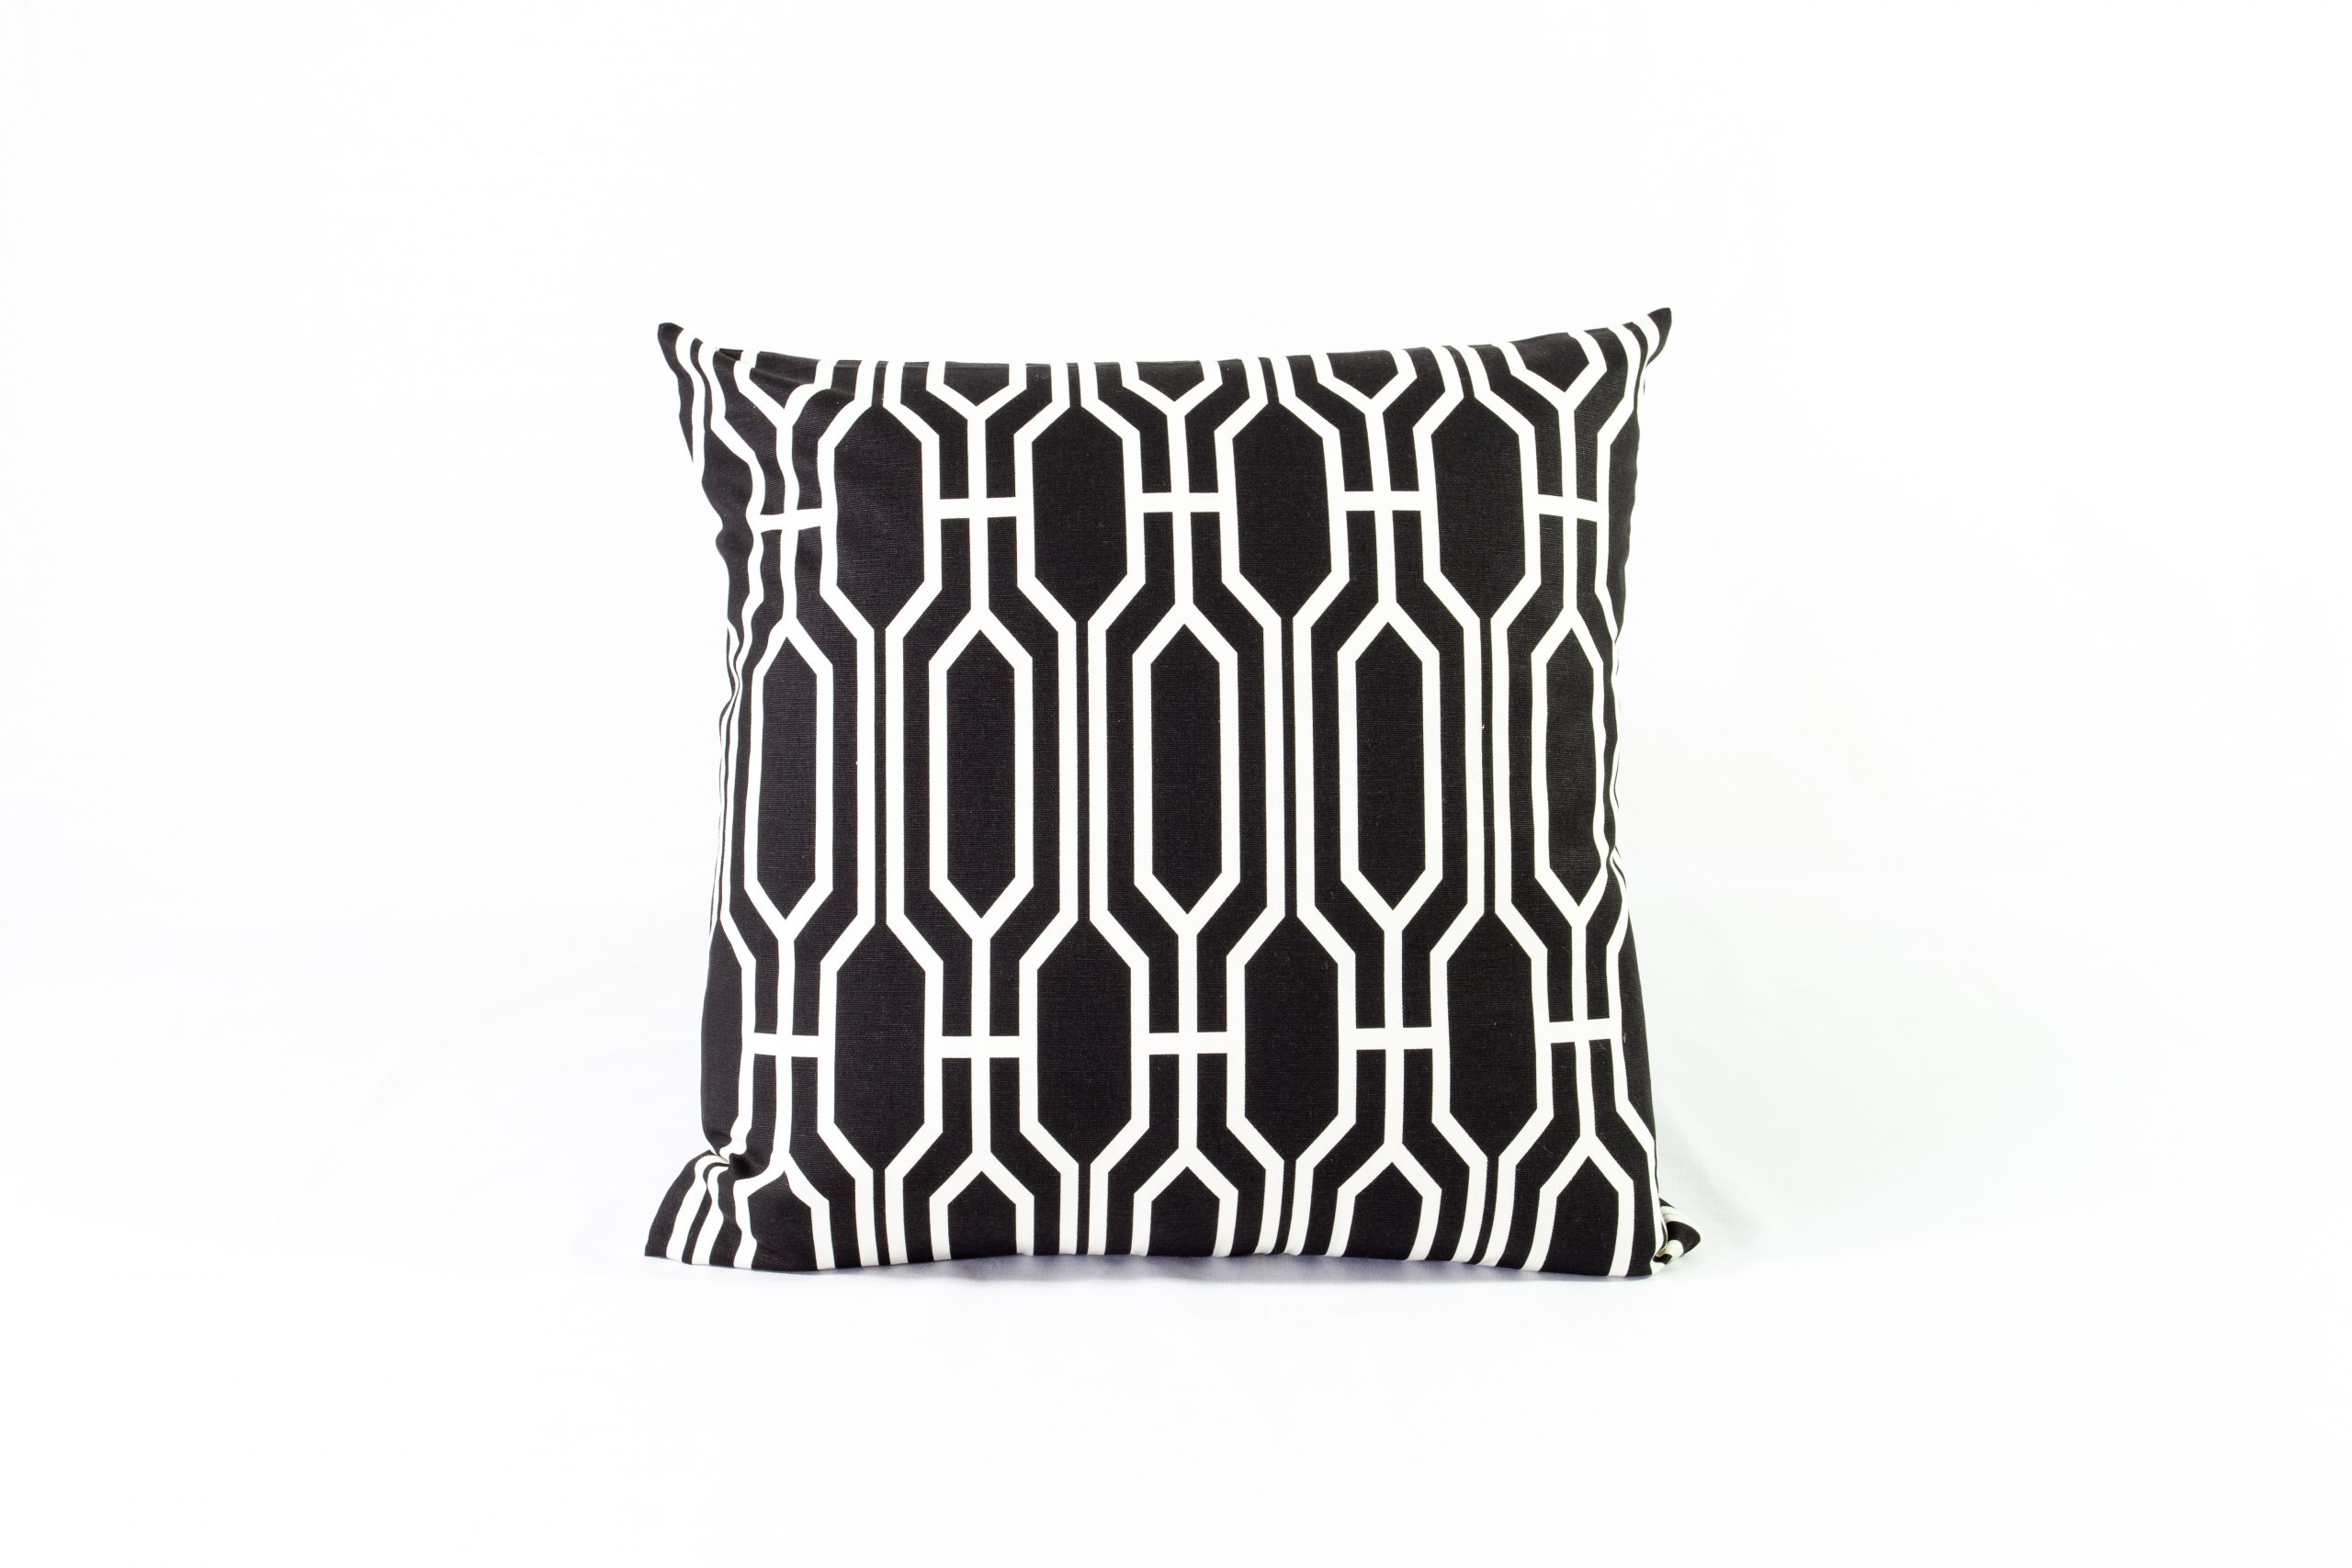 Black & White Geometric Cushion - 19x19 - Qty2 - 1of1